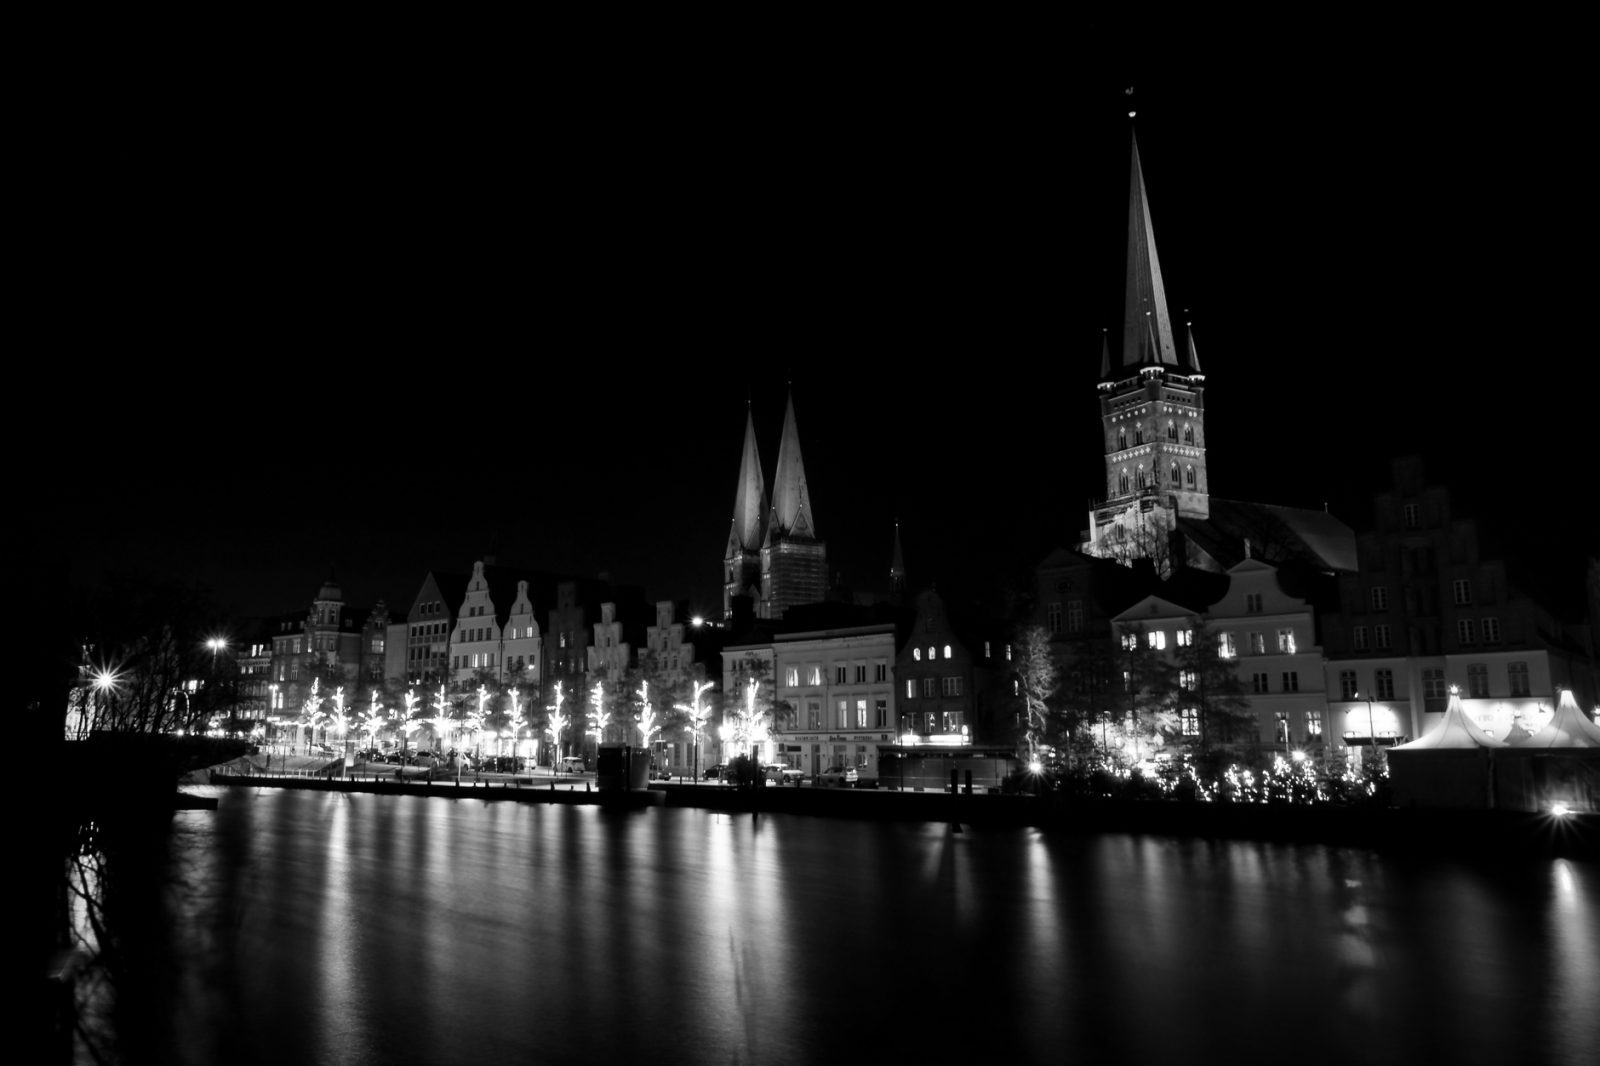 Night photography in Lübeck, Germany - Downtown Lübeck (old city center)